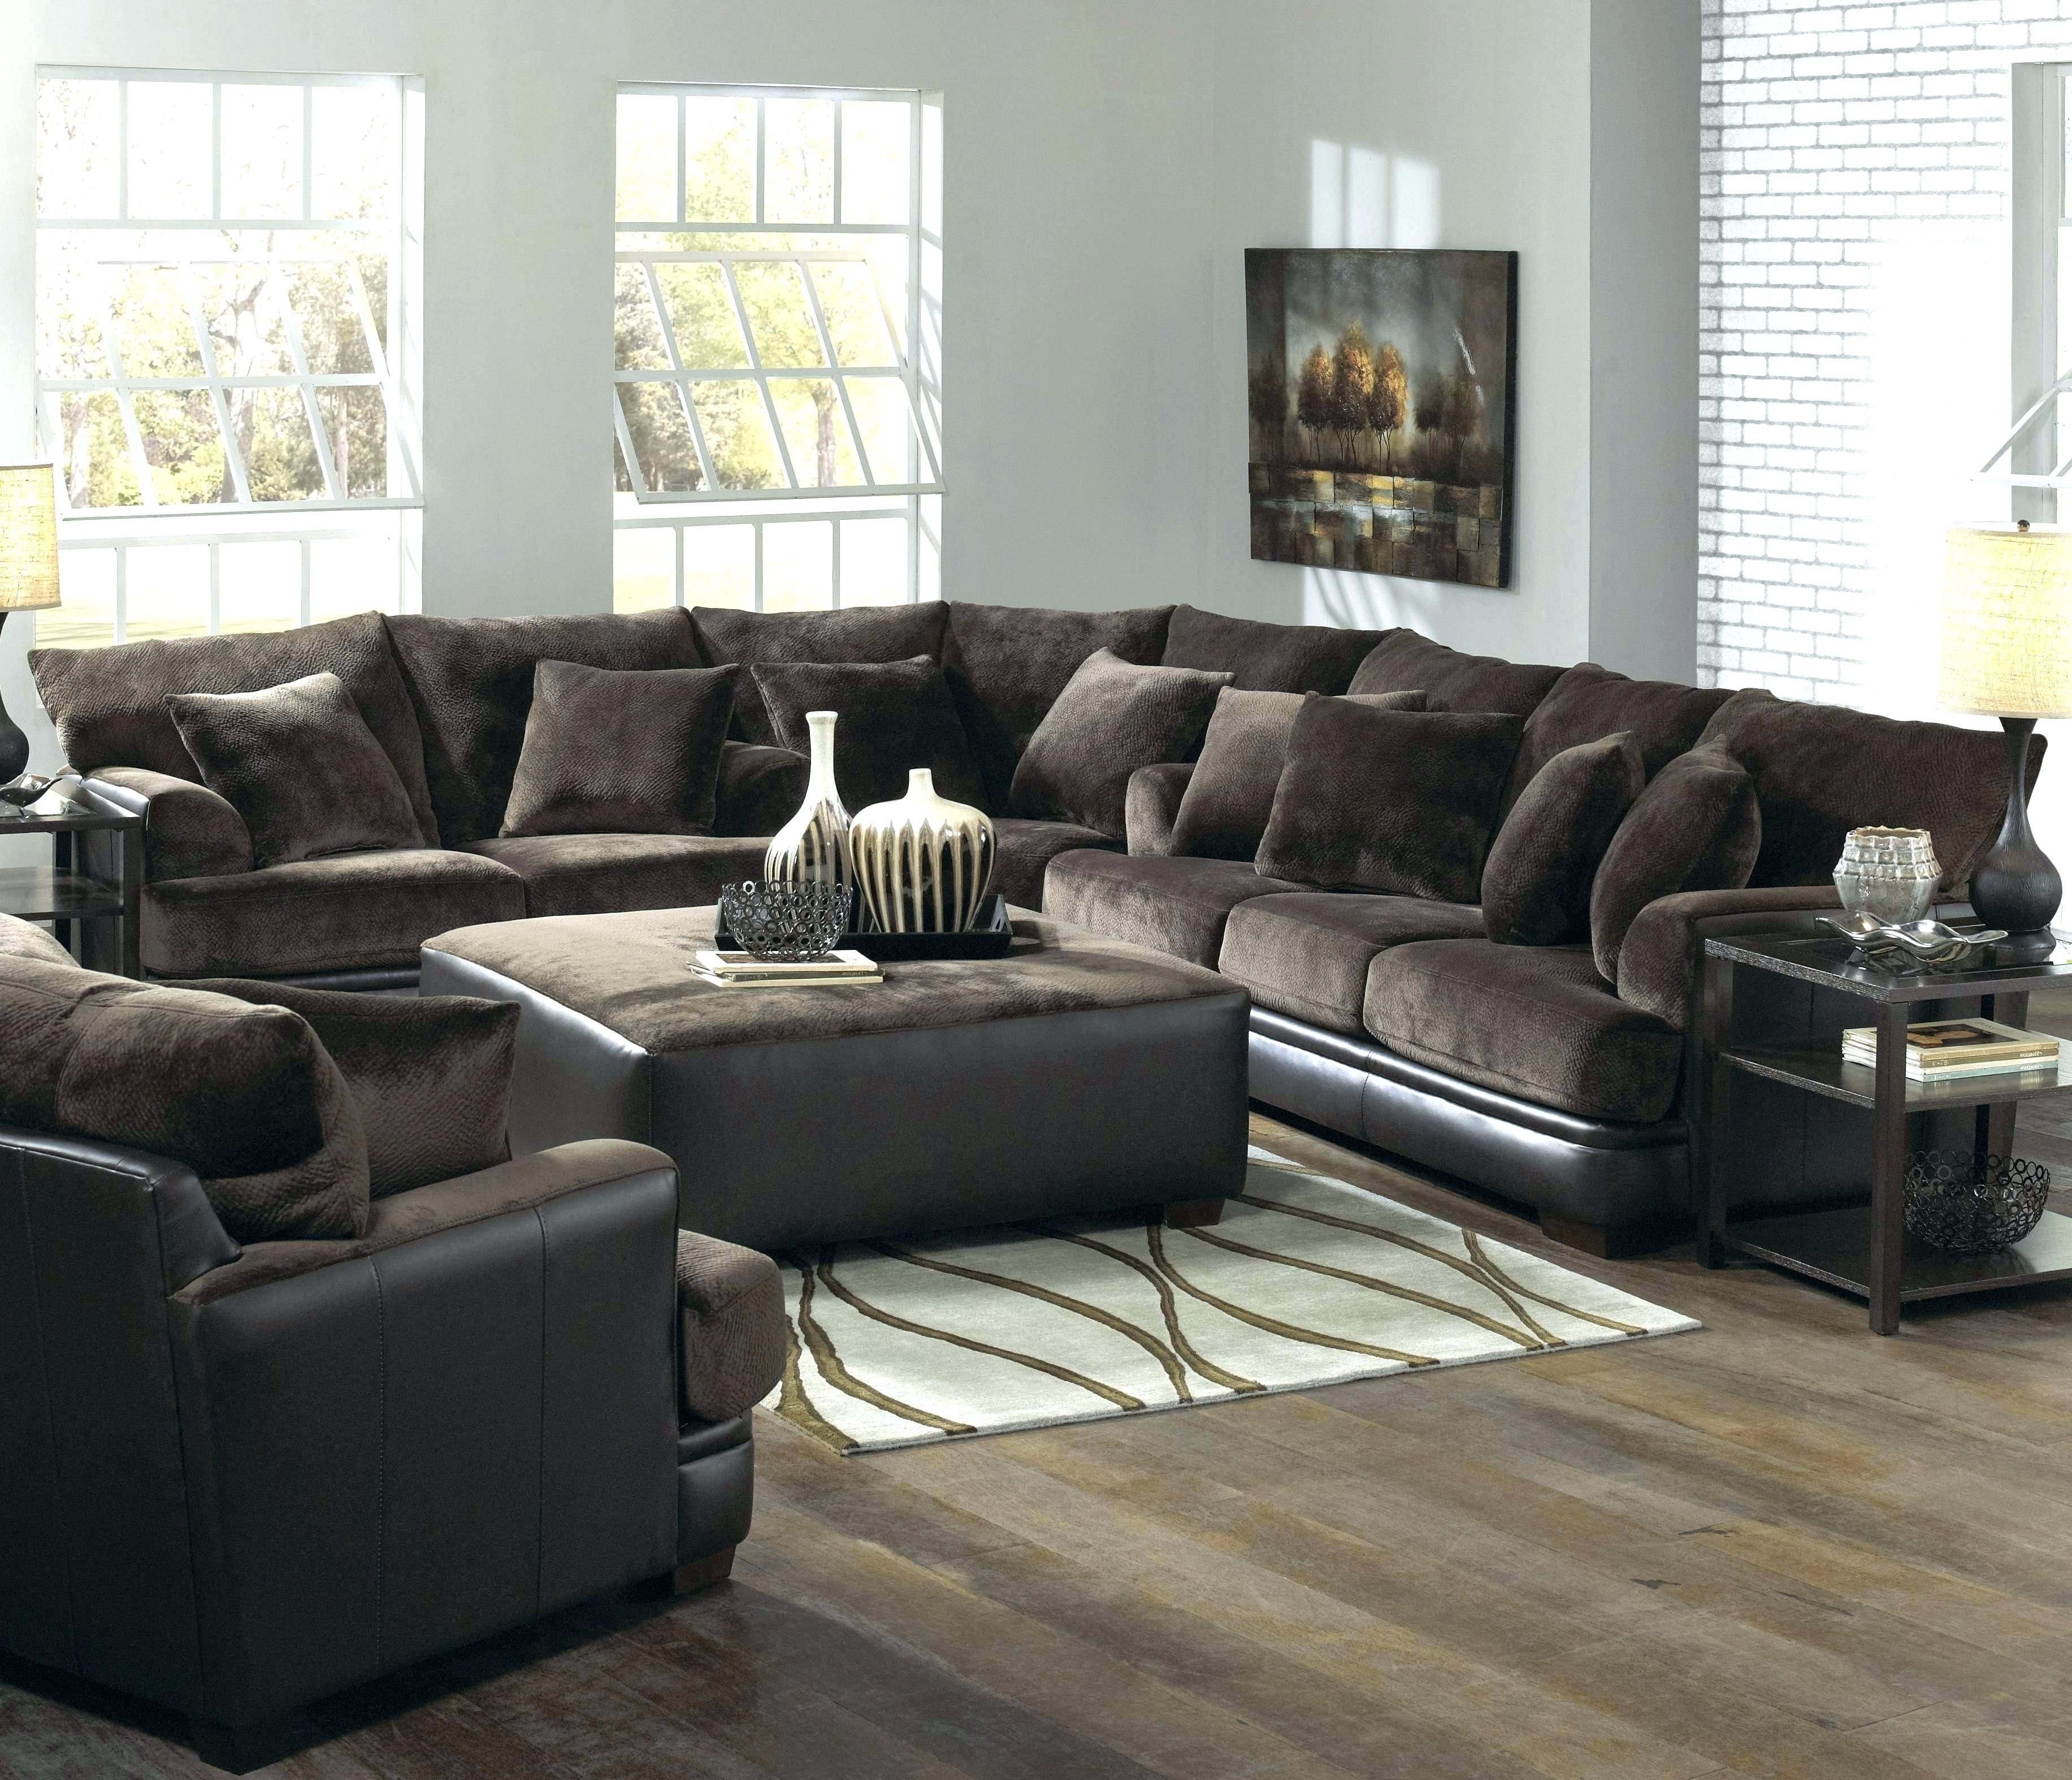 Sectional Sofas For Sale – Stepdesigns Inside Kijiji Calgary Sectional Sofas (Image 9 of 10)